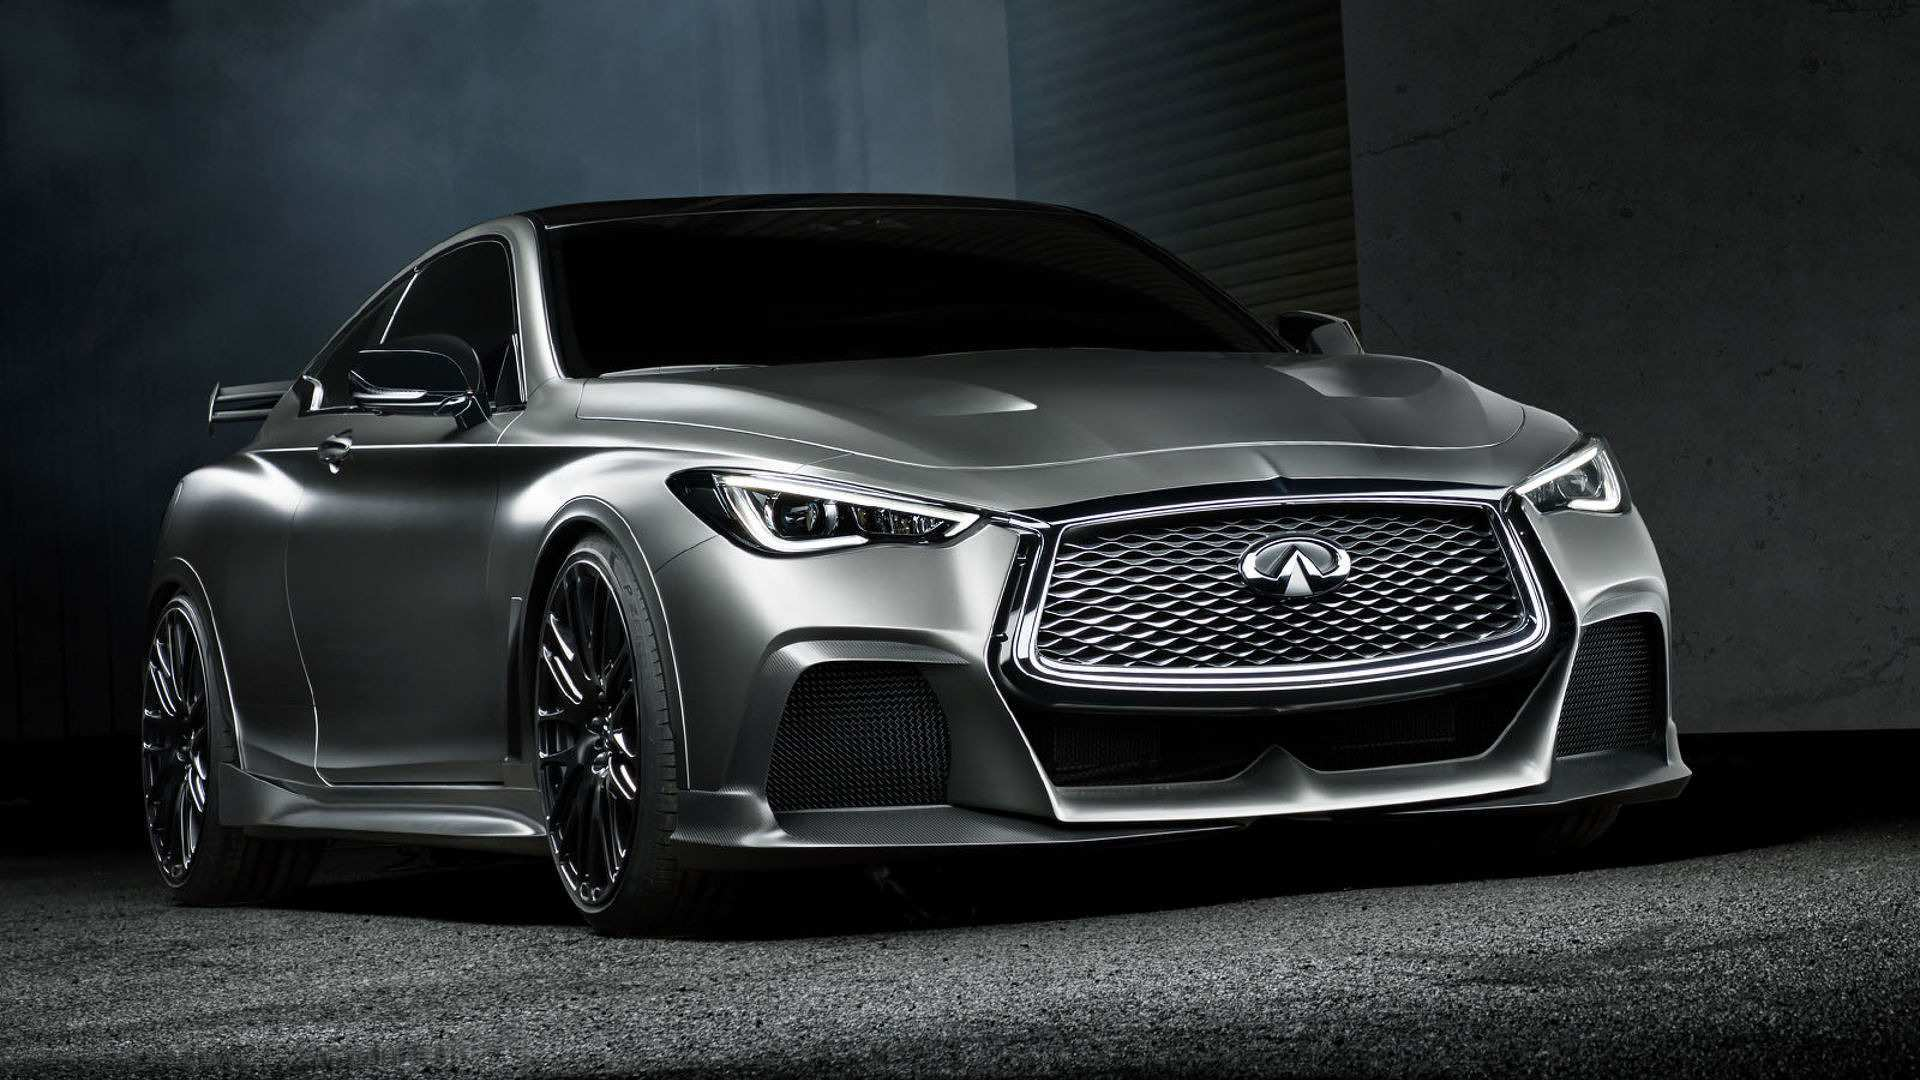 34 Best Review 2020 Infiniti Q60 Project Black S Concept by 2020 Infiniti Q60 Project Black S